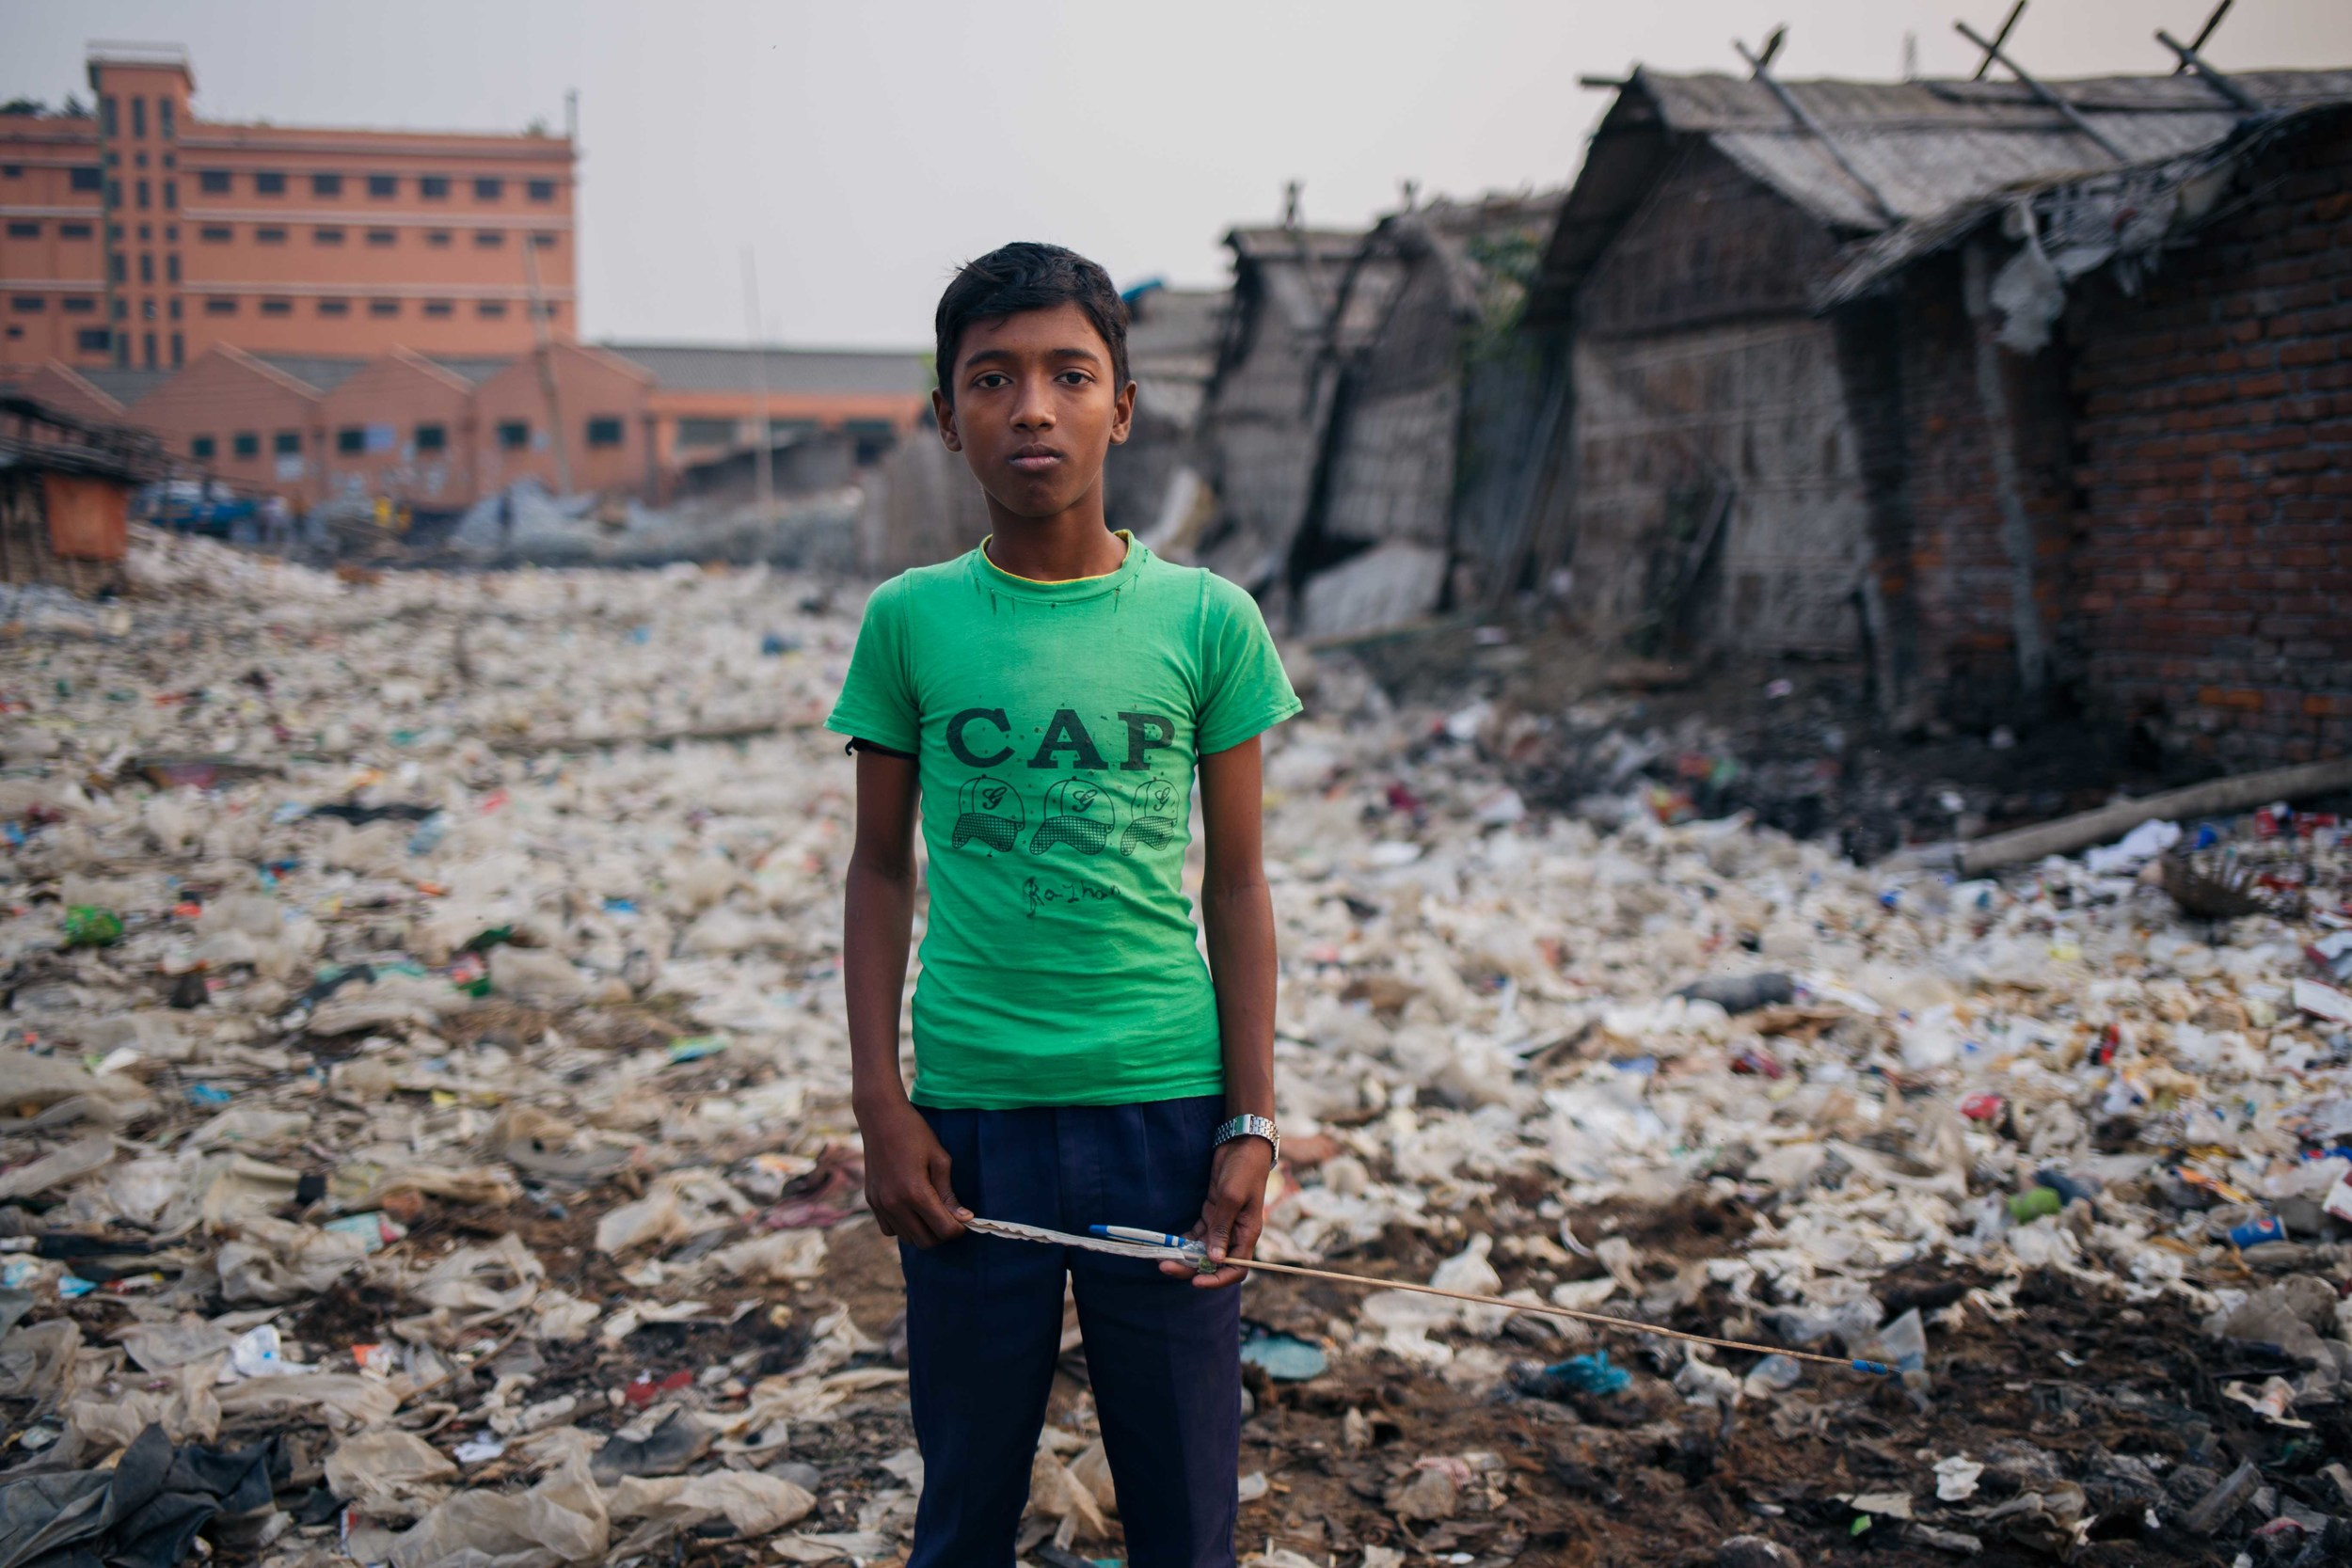 Hassan Ali, aged 11, also collects leftovers from the carcasses of animals used for leather hides. He wants to work in the industry as his family has done for the past few generations and says the move to Savar will be difficult for him as he might have to relocate. He cannot think of other jobs he could do in Hazaribagh should the tanneries move.